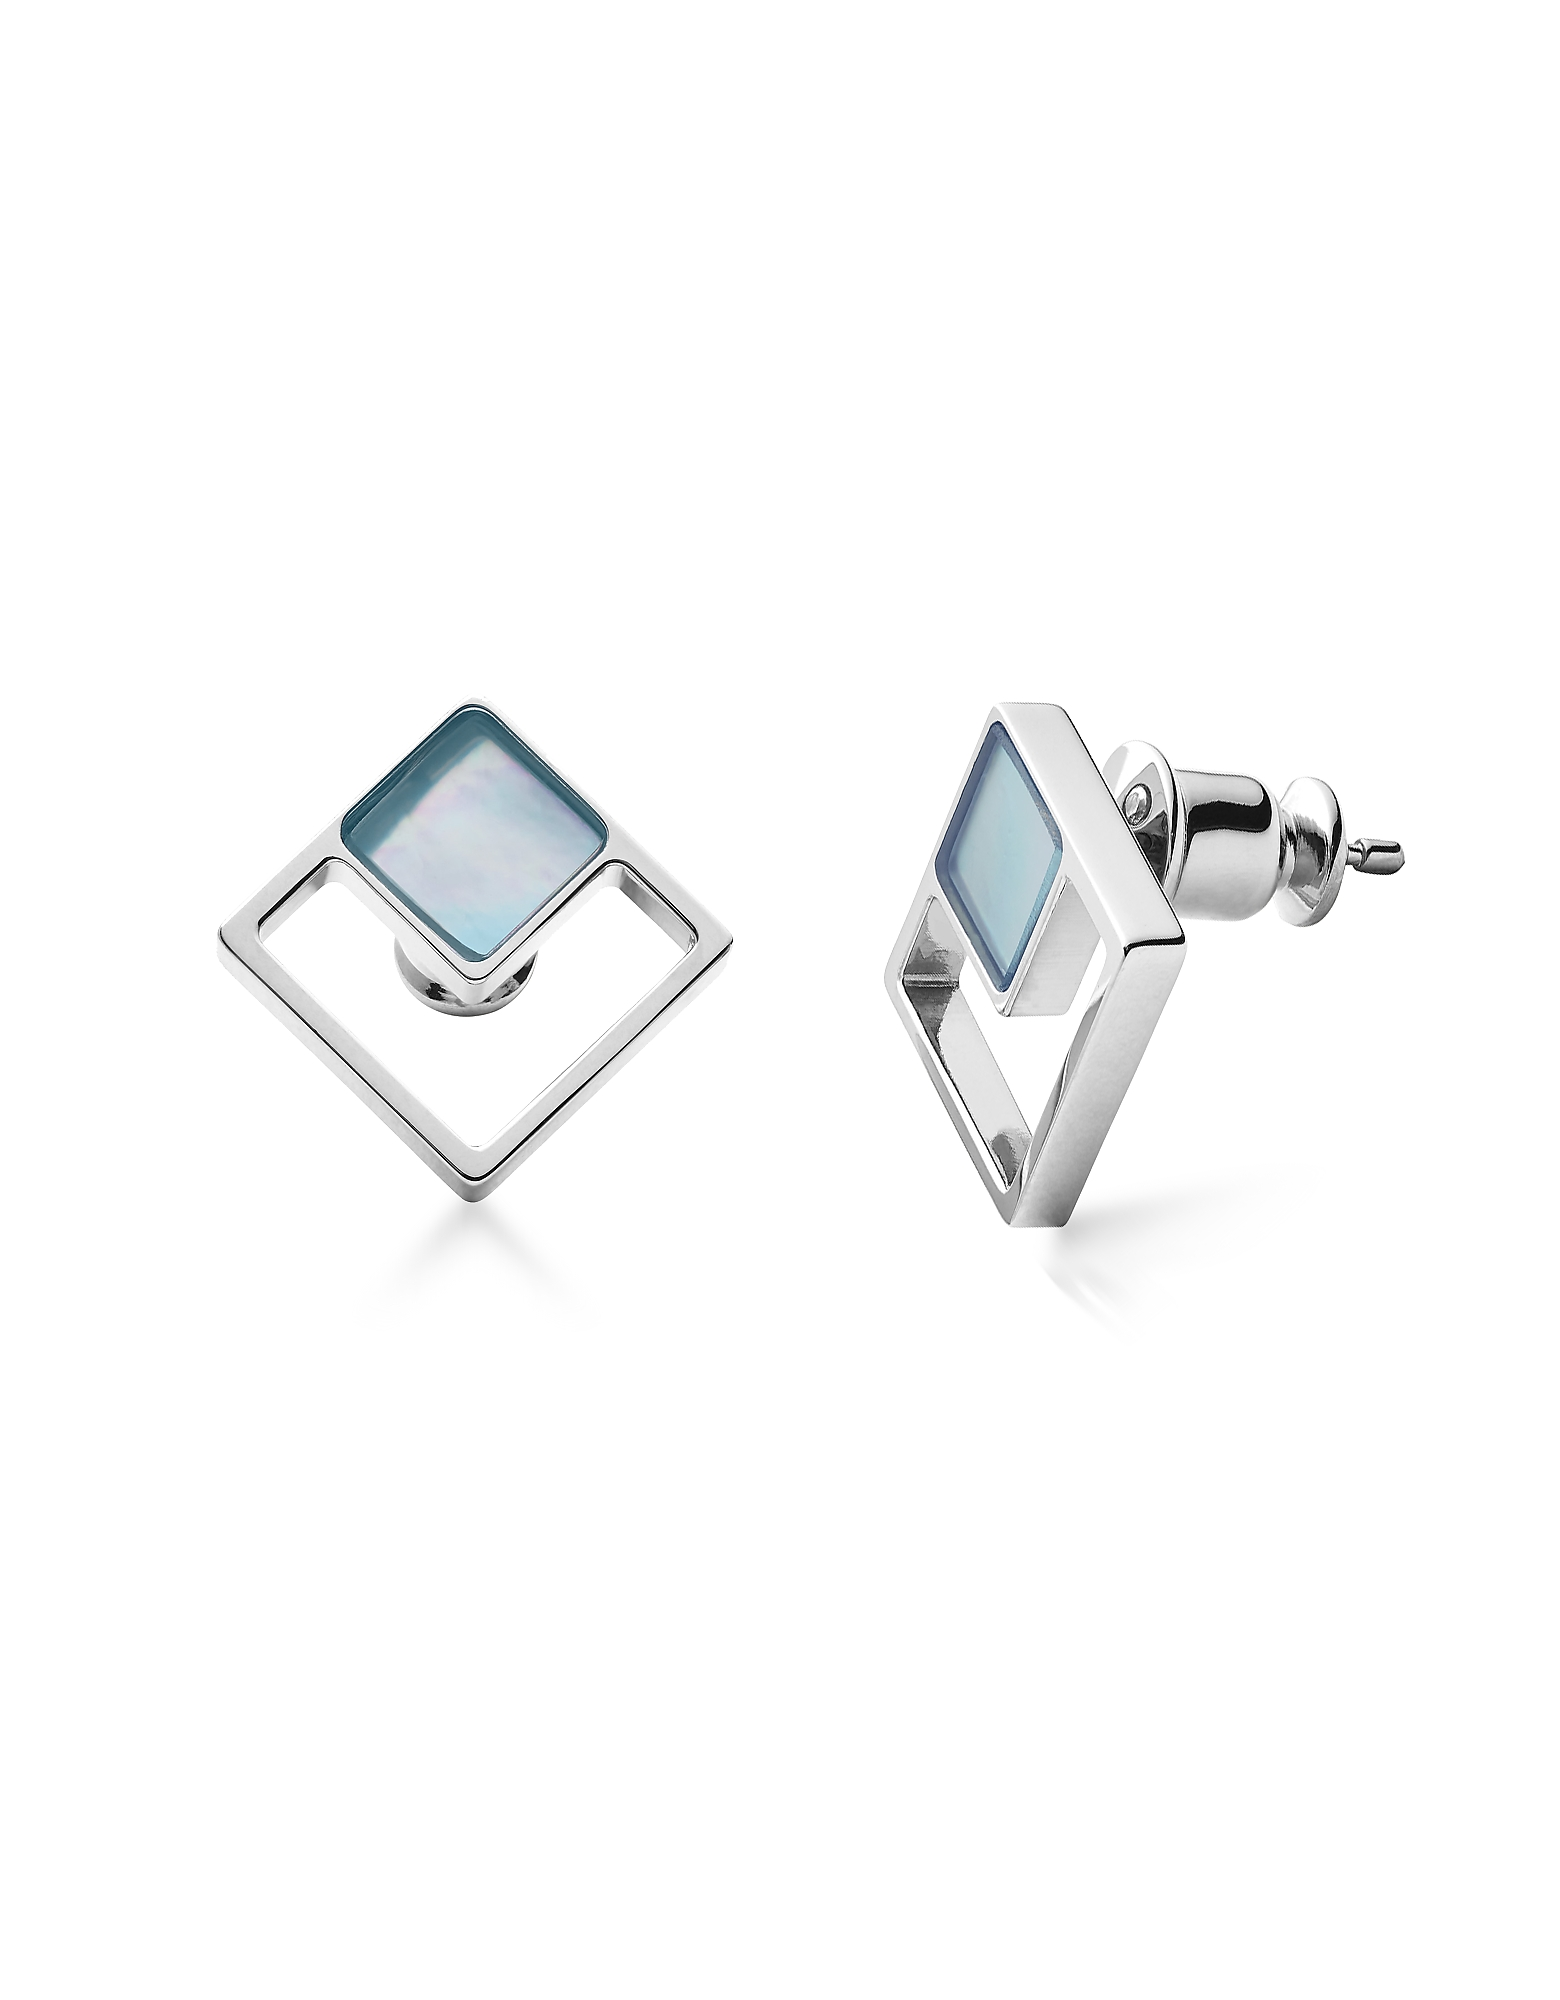 Agnethe Silver-Tone Mother of Pearl Square Stud Earrings